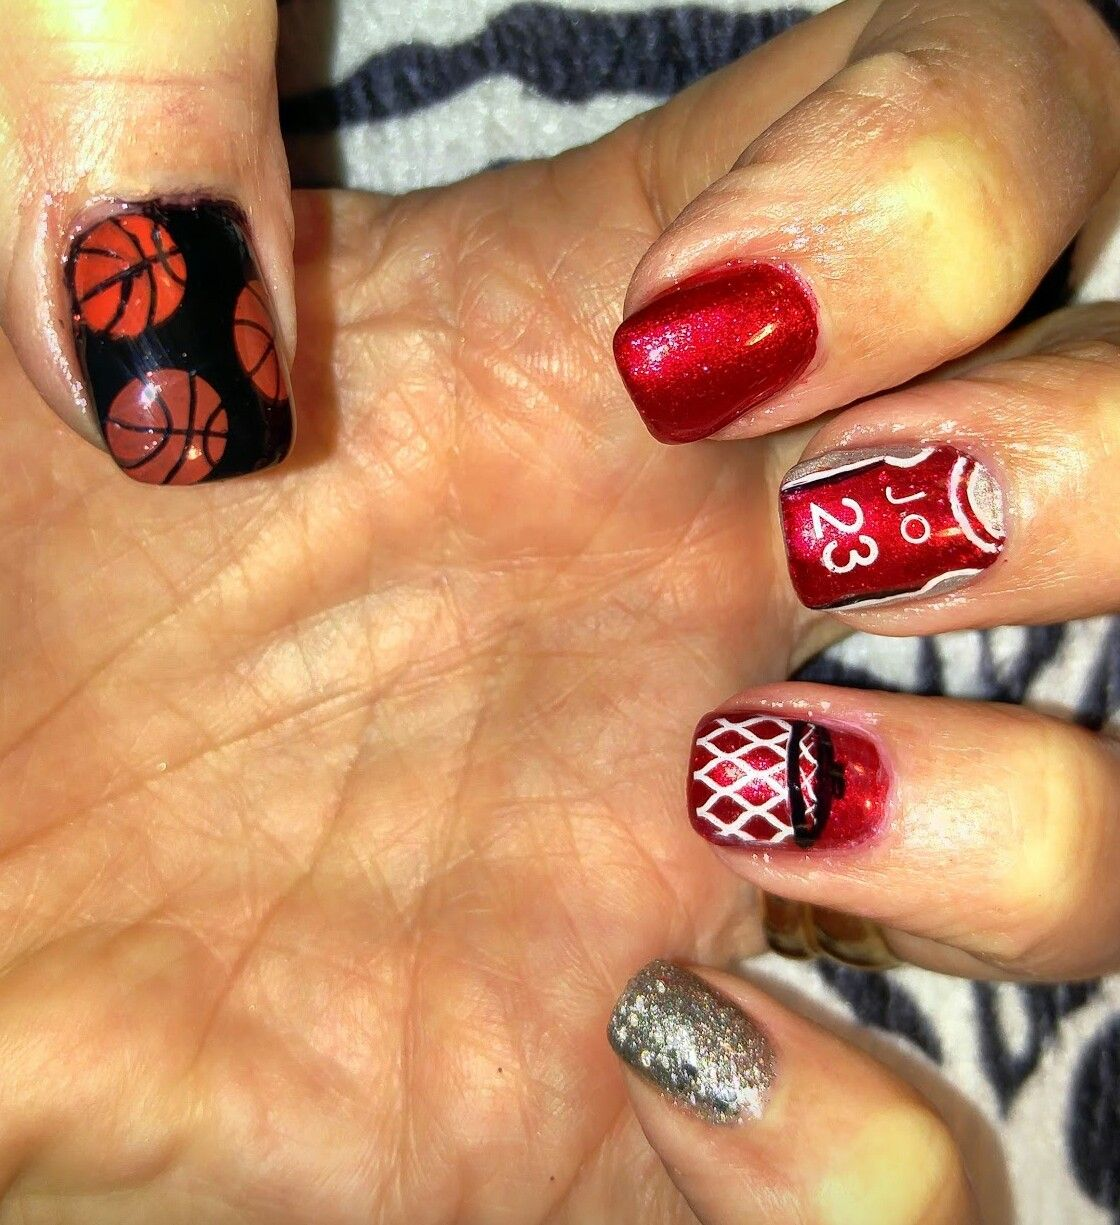 Basketball Nails Acrylic With Stamped Nail Art In Thumbs And Free Hand On Ring Middle Fingers The Numbers Letters Were